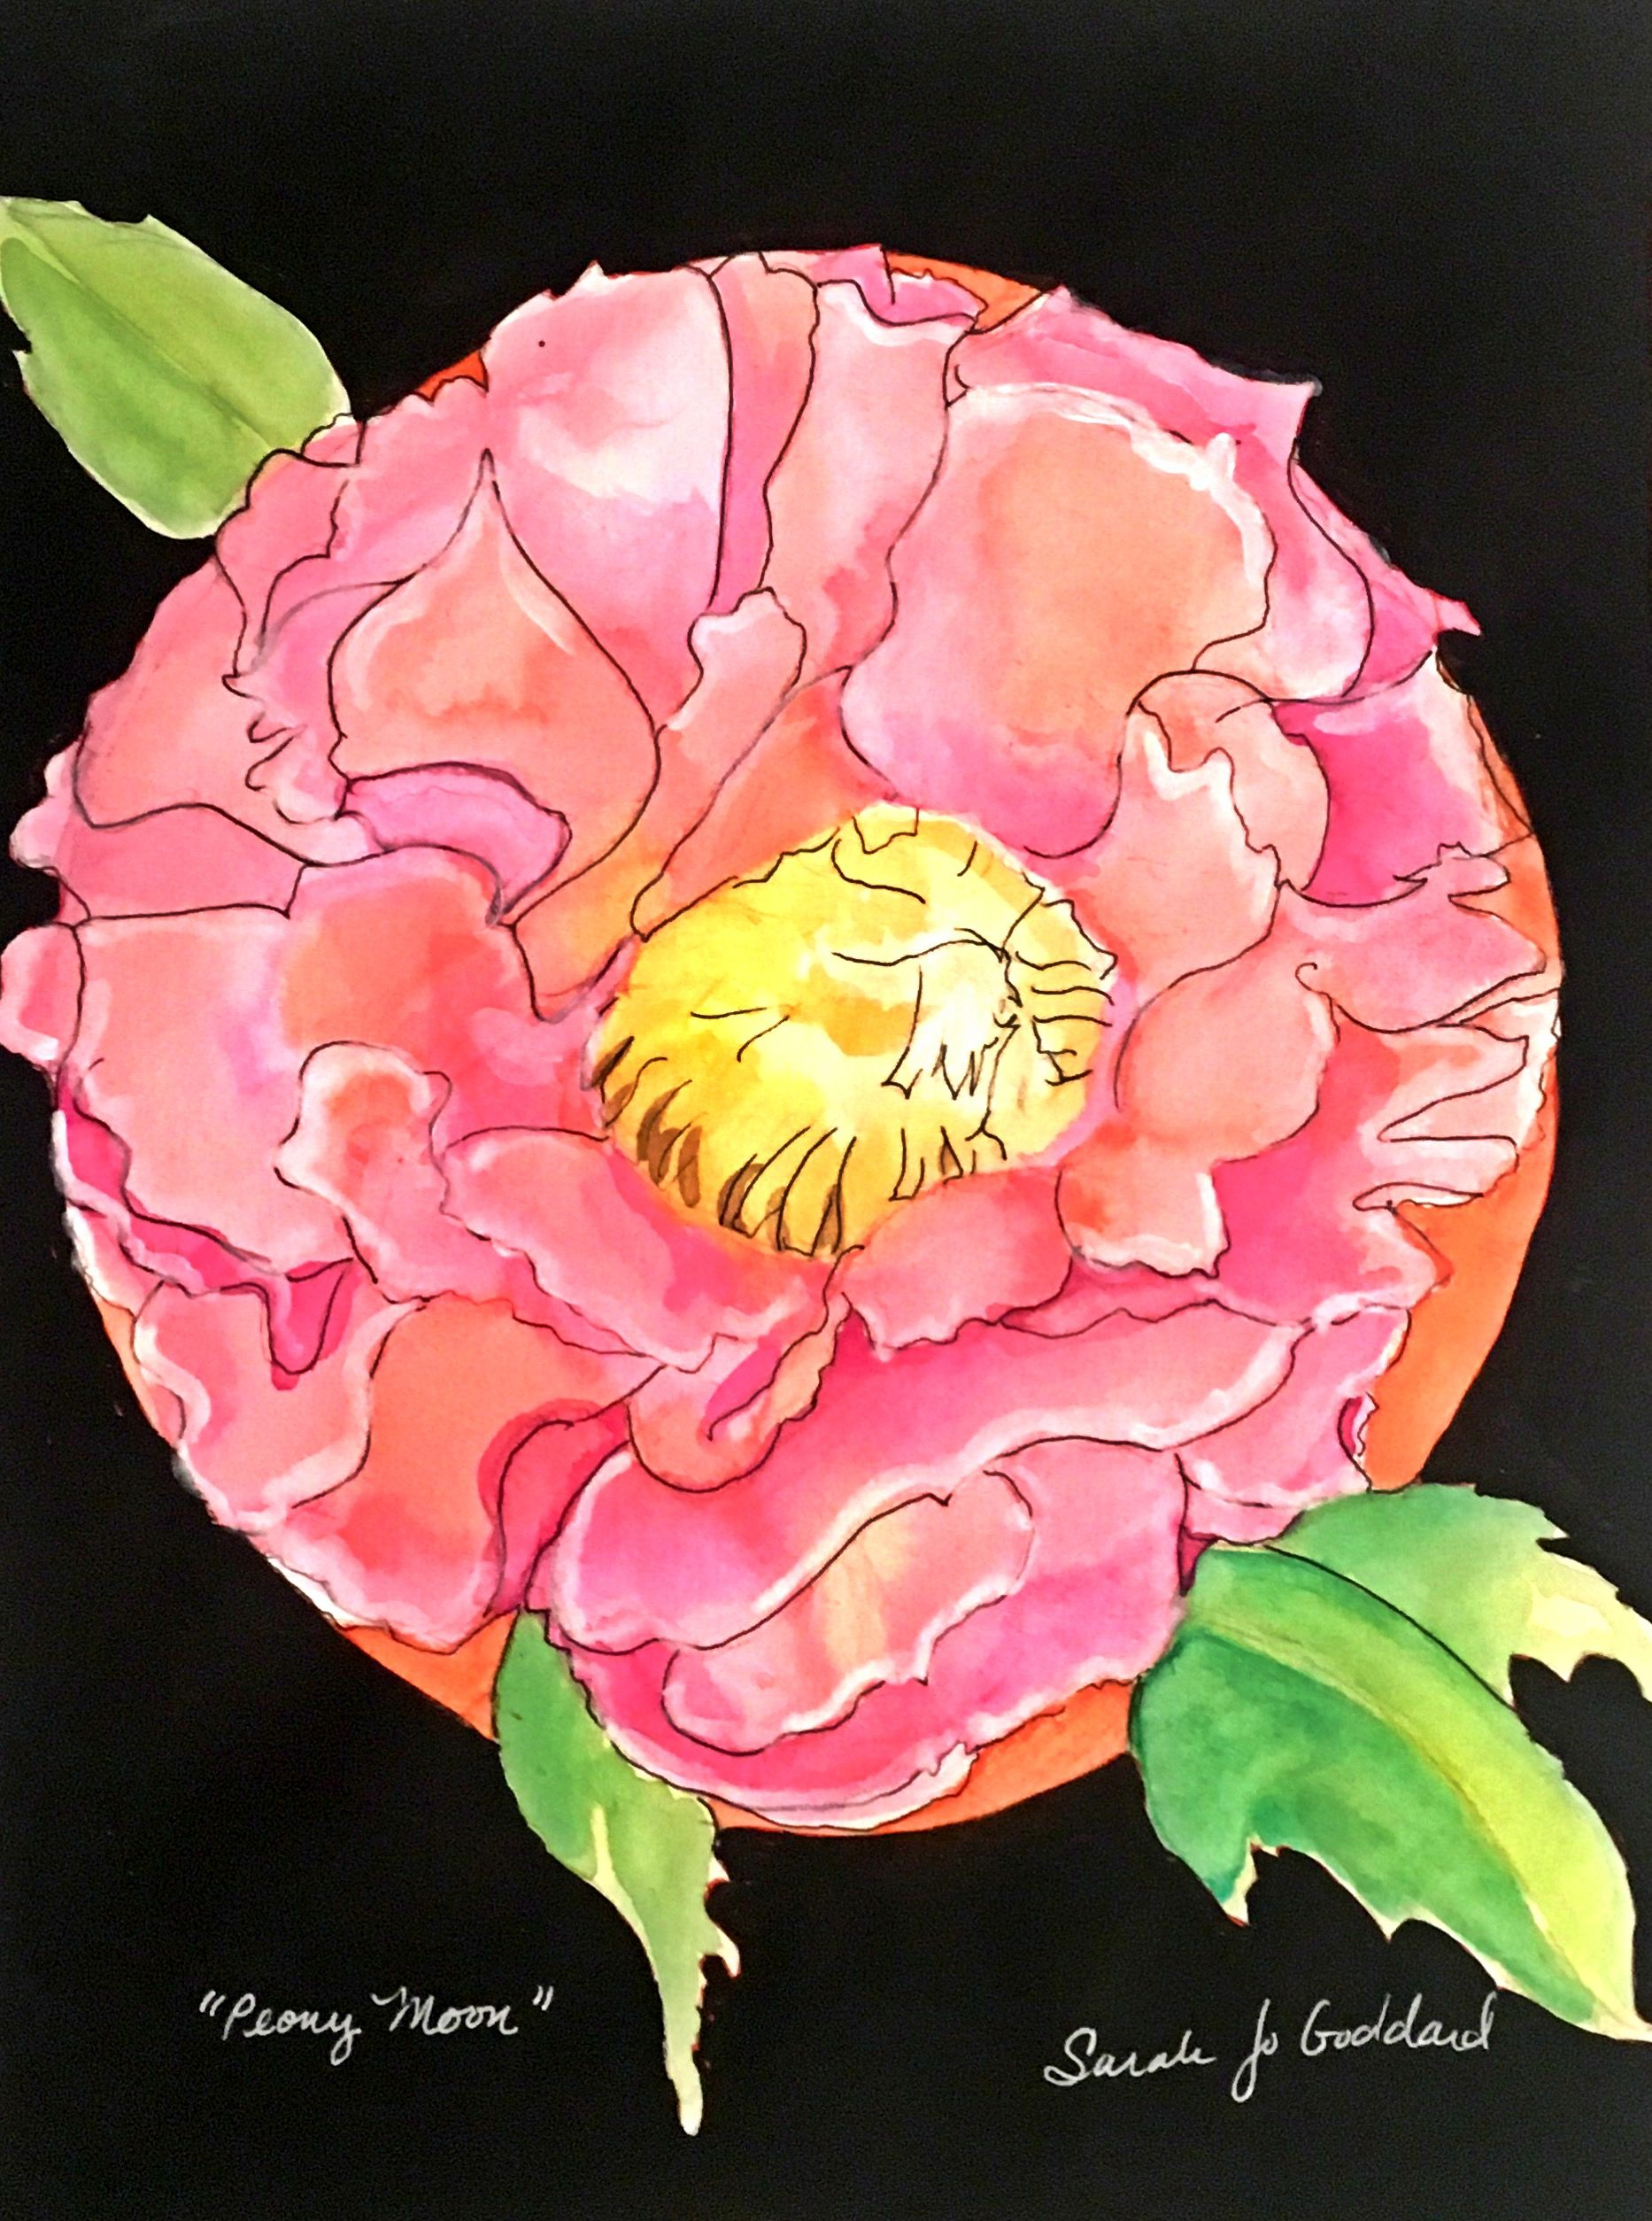 Chinese Peony Moon (April)